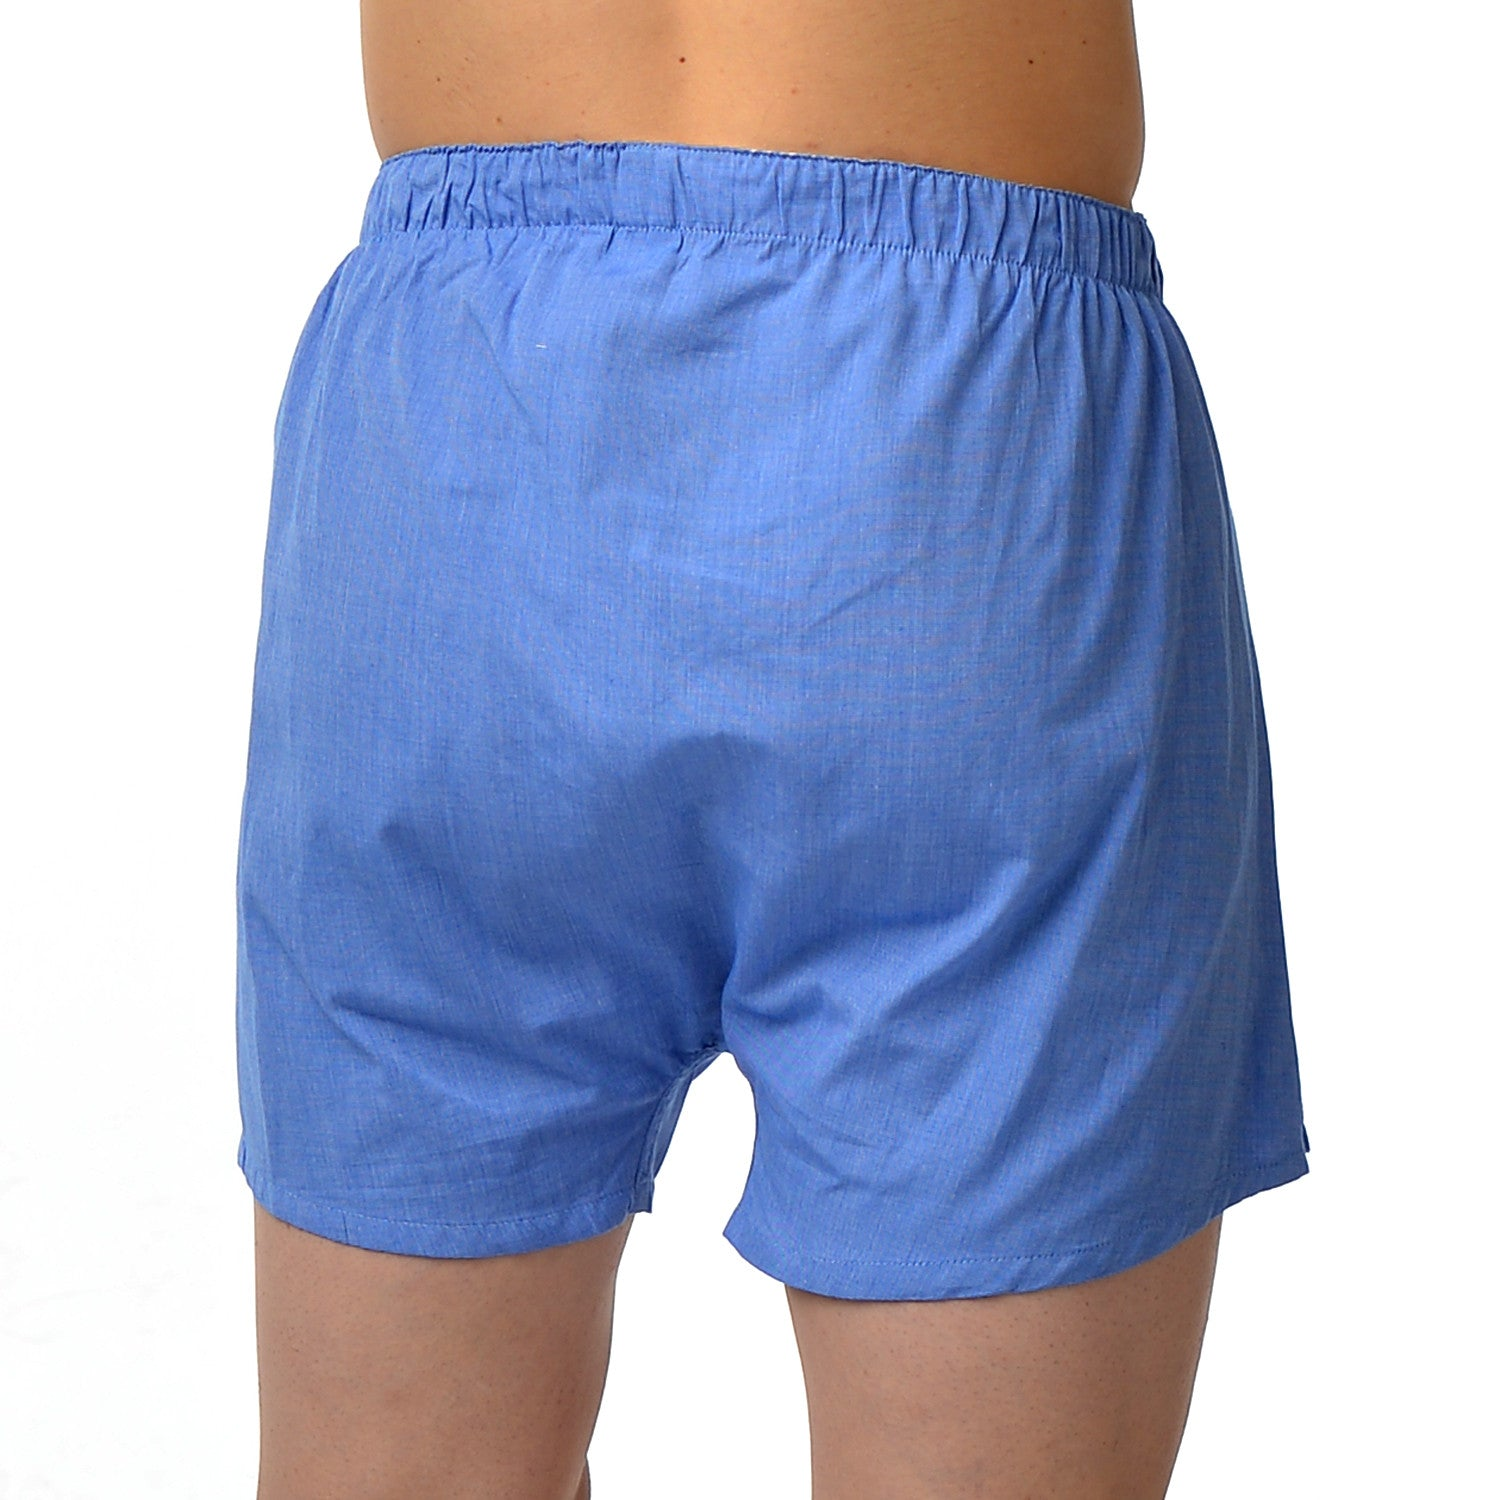 Tall Size Woven Boxer Short